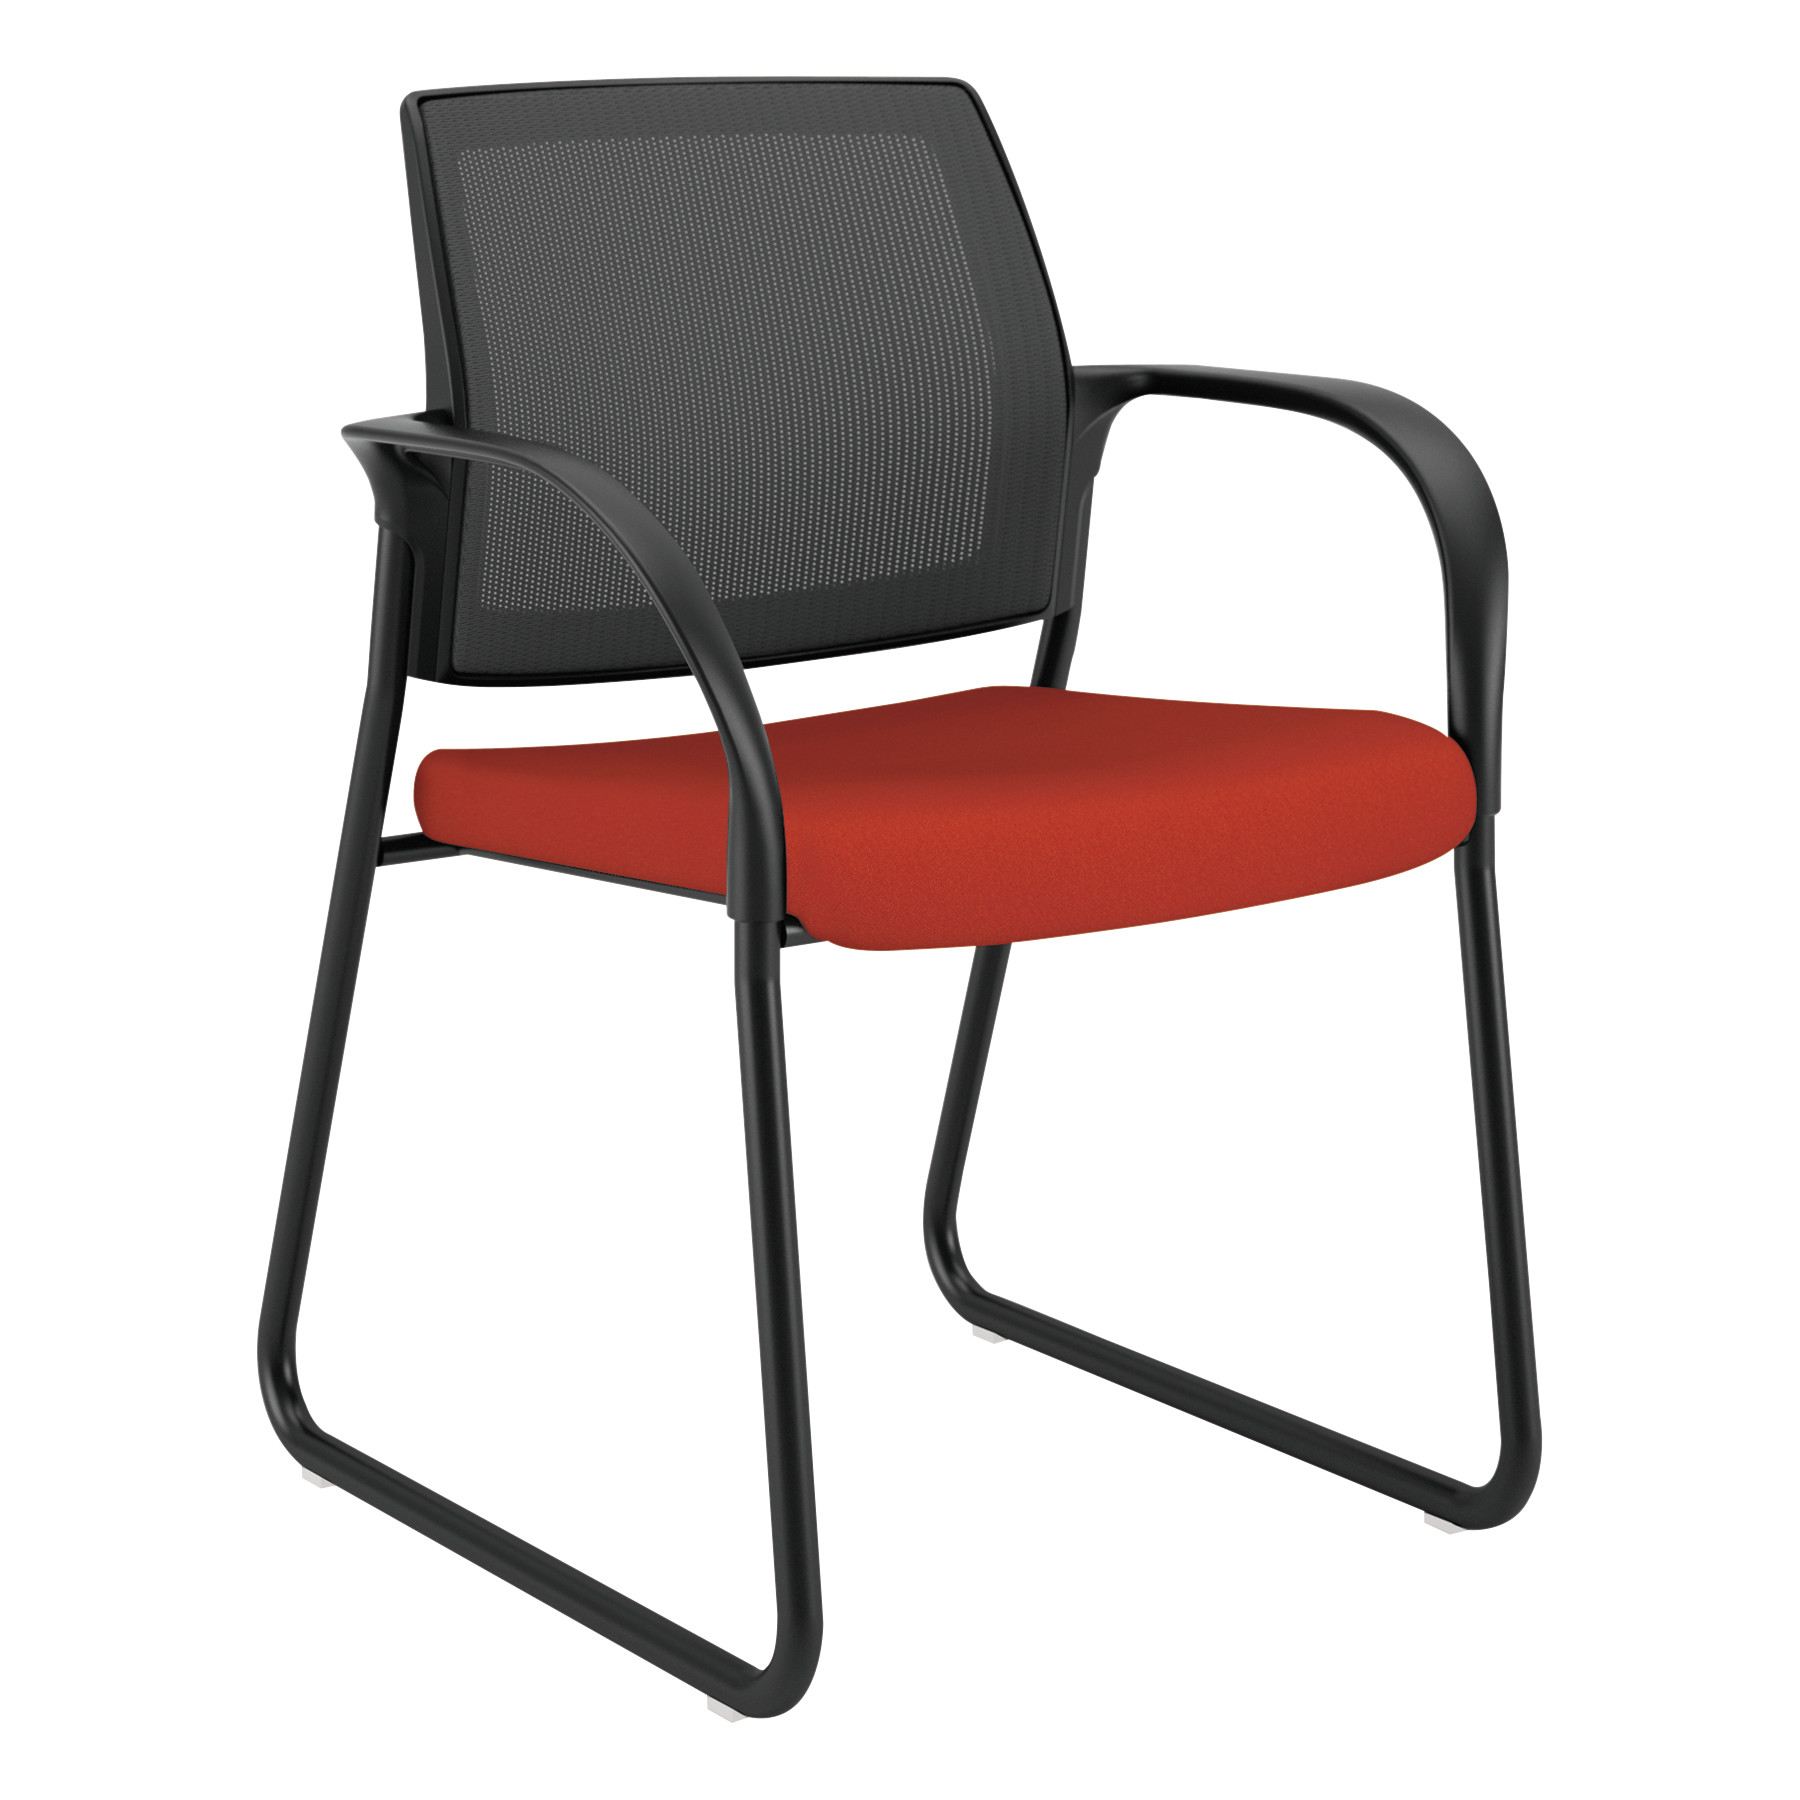 HON Ignition Series Mesh Back Guest Reception Waiting Room Chair with Sled Base,Poppy Fabric Upholstery